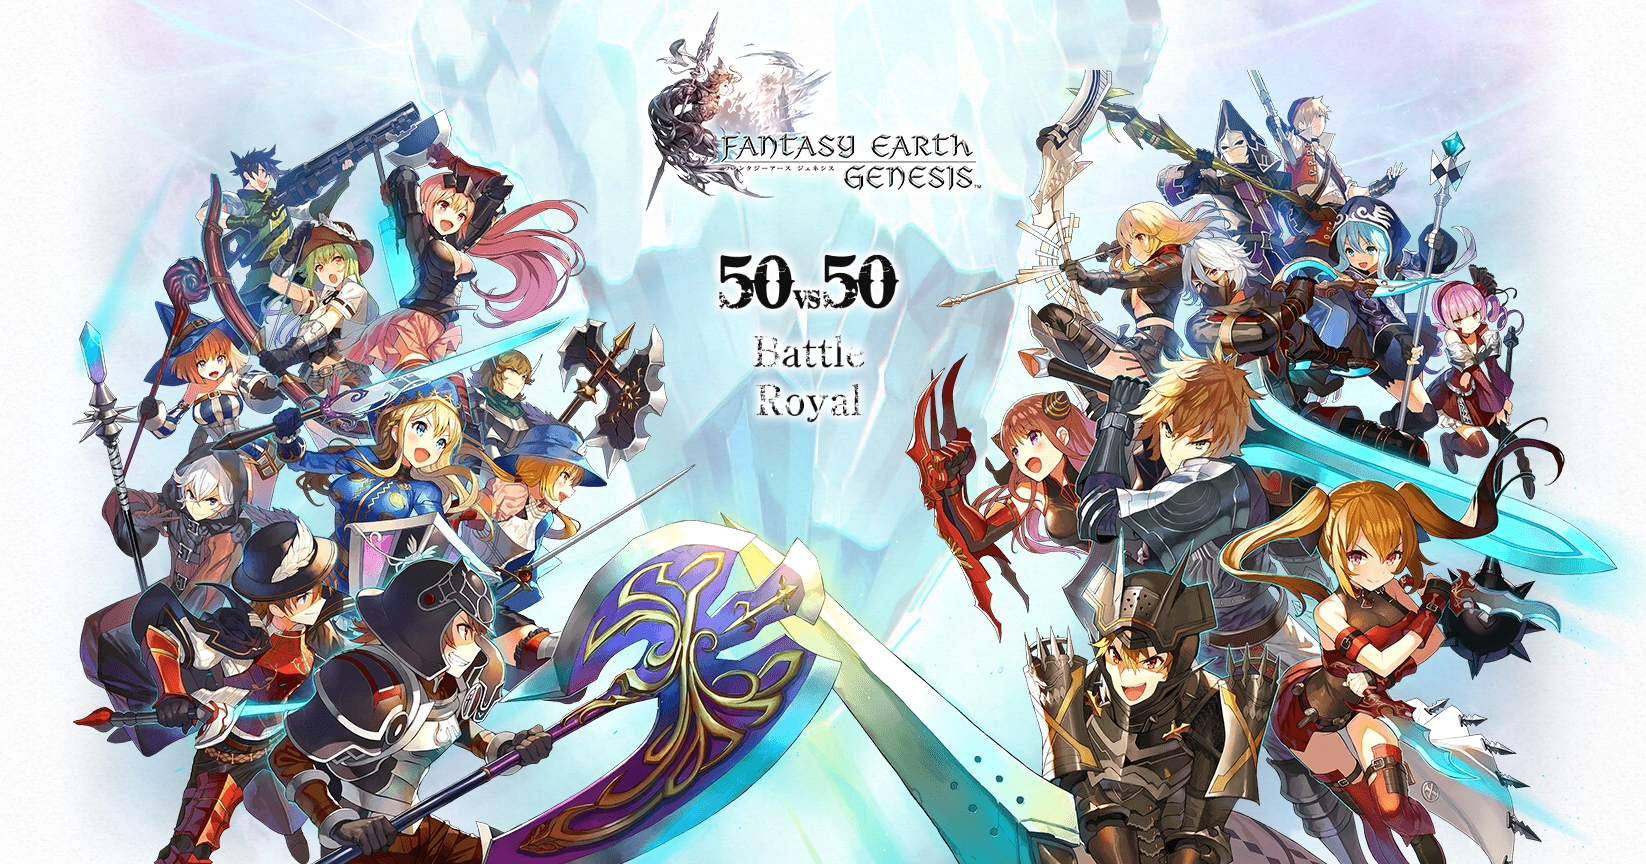 Fantasy Earth Genesis Mobile Game Terminating Service Next Month